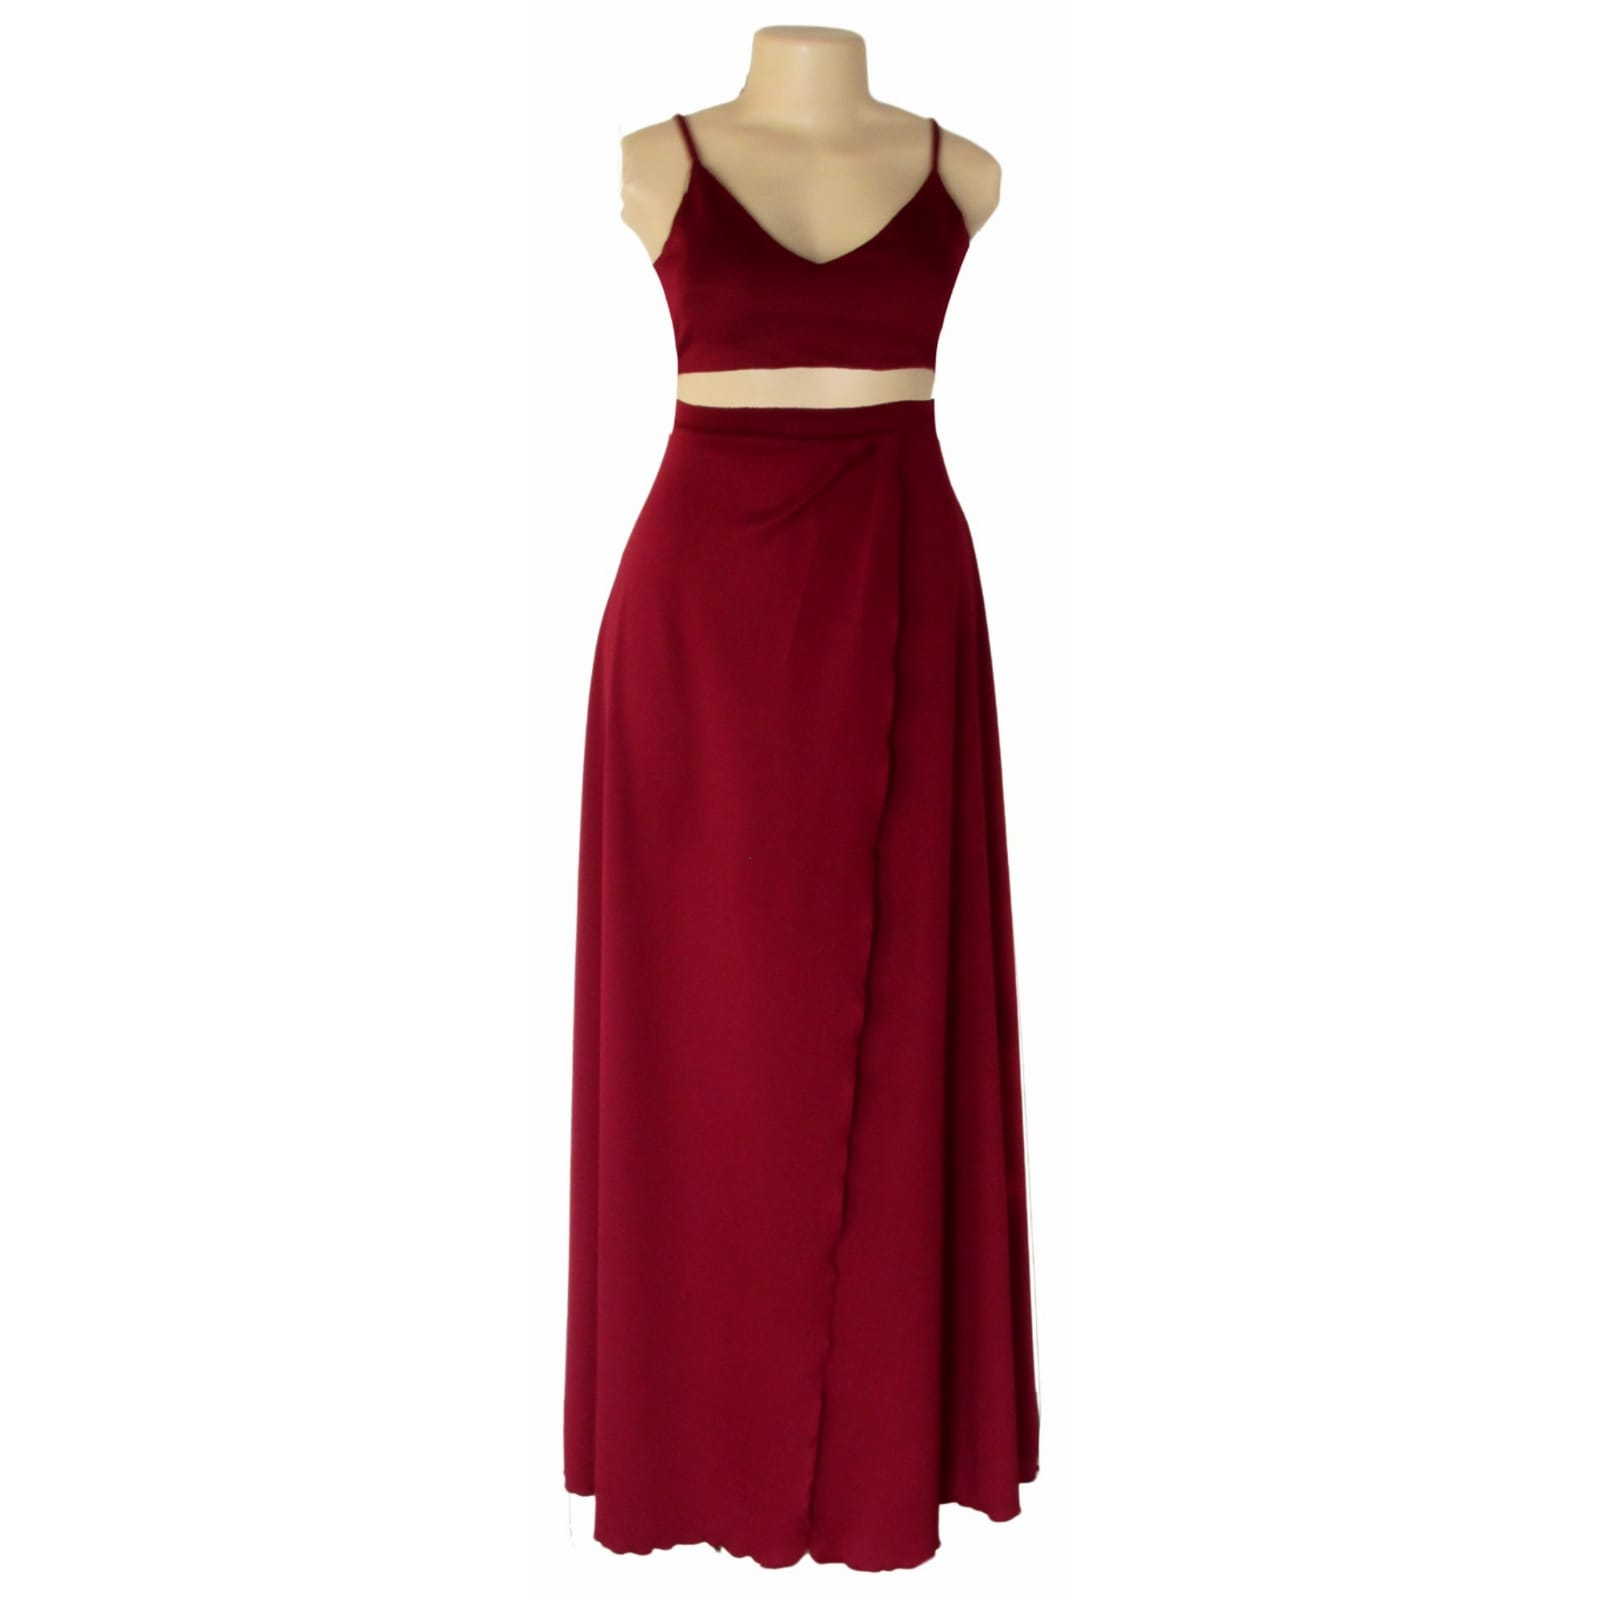 Maroon 2 piece smart casual wear 1 maroon 2 piece smart casual wear with a crop top and a long skirt with a crossed slit.